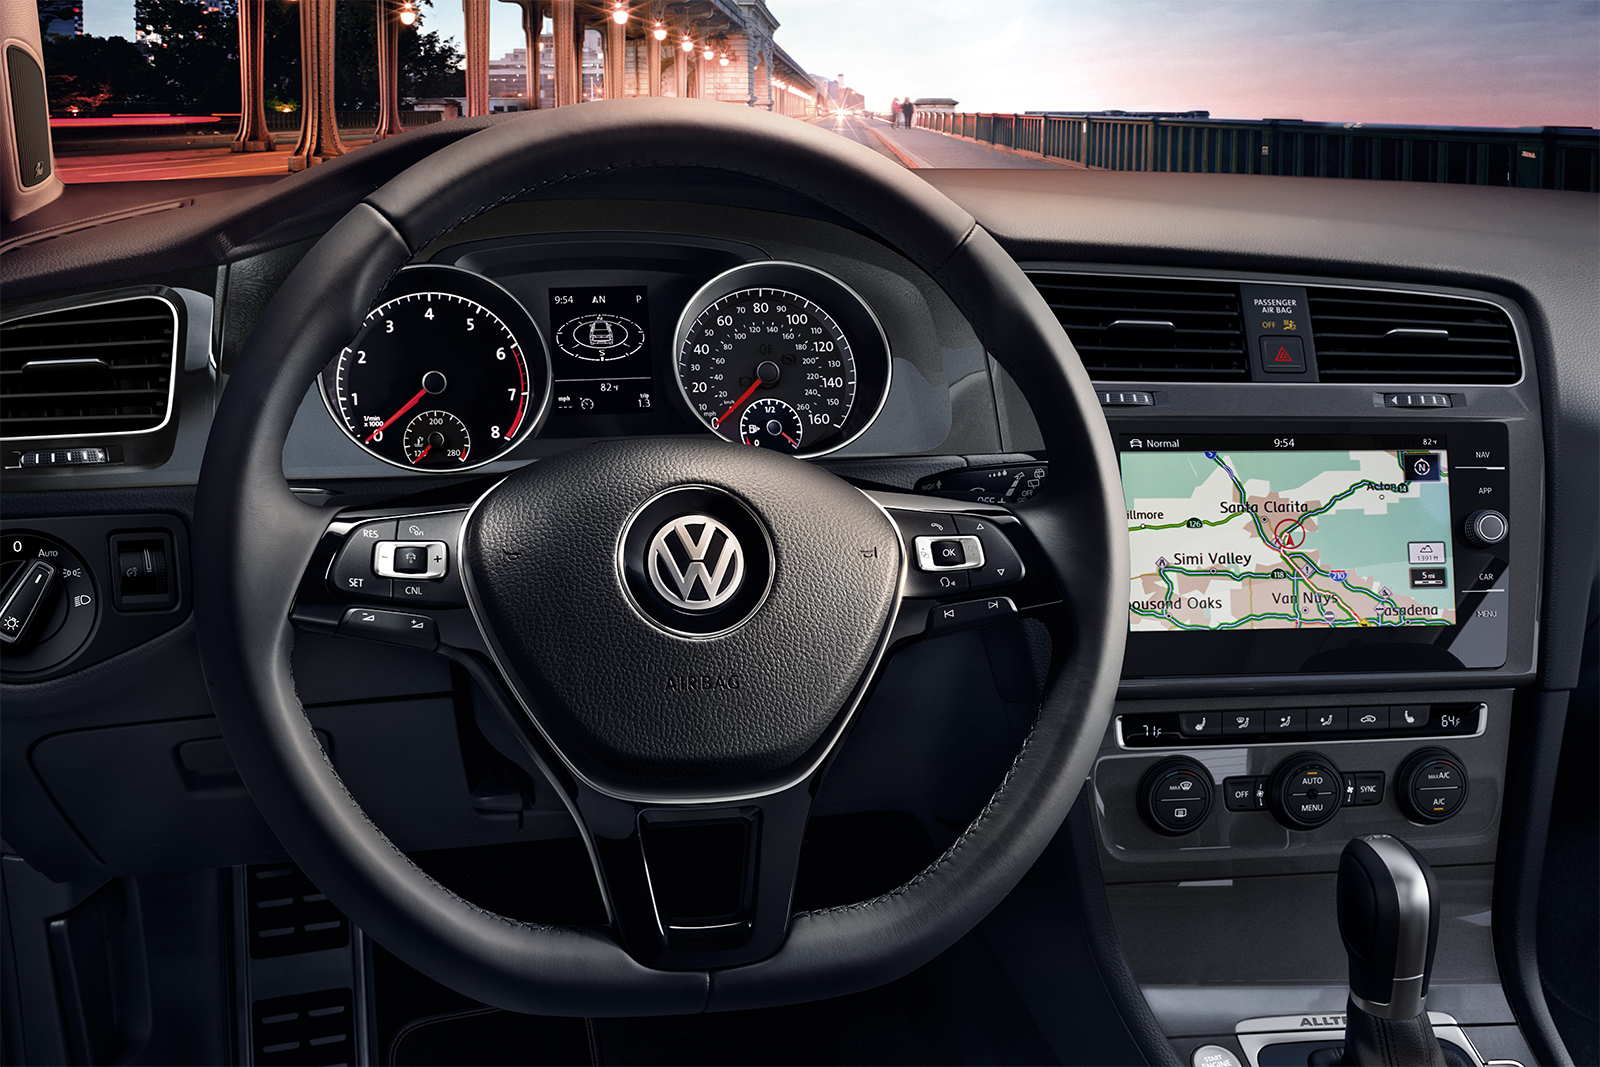 2018 Volkswagen Golf Alltrack Dashboard Interior